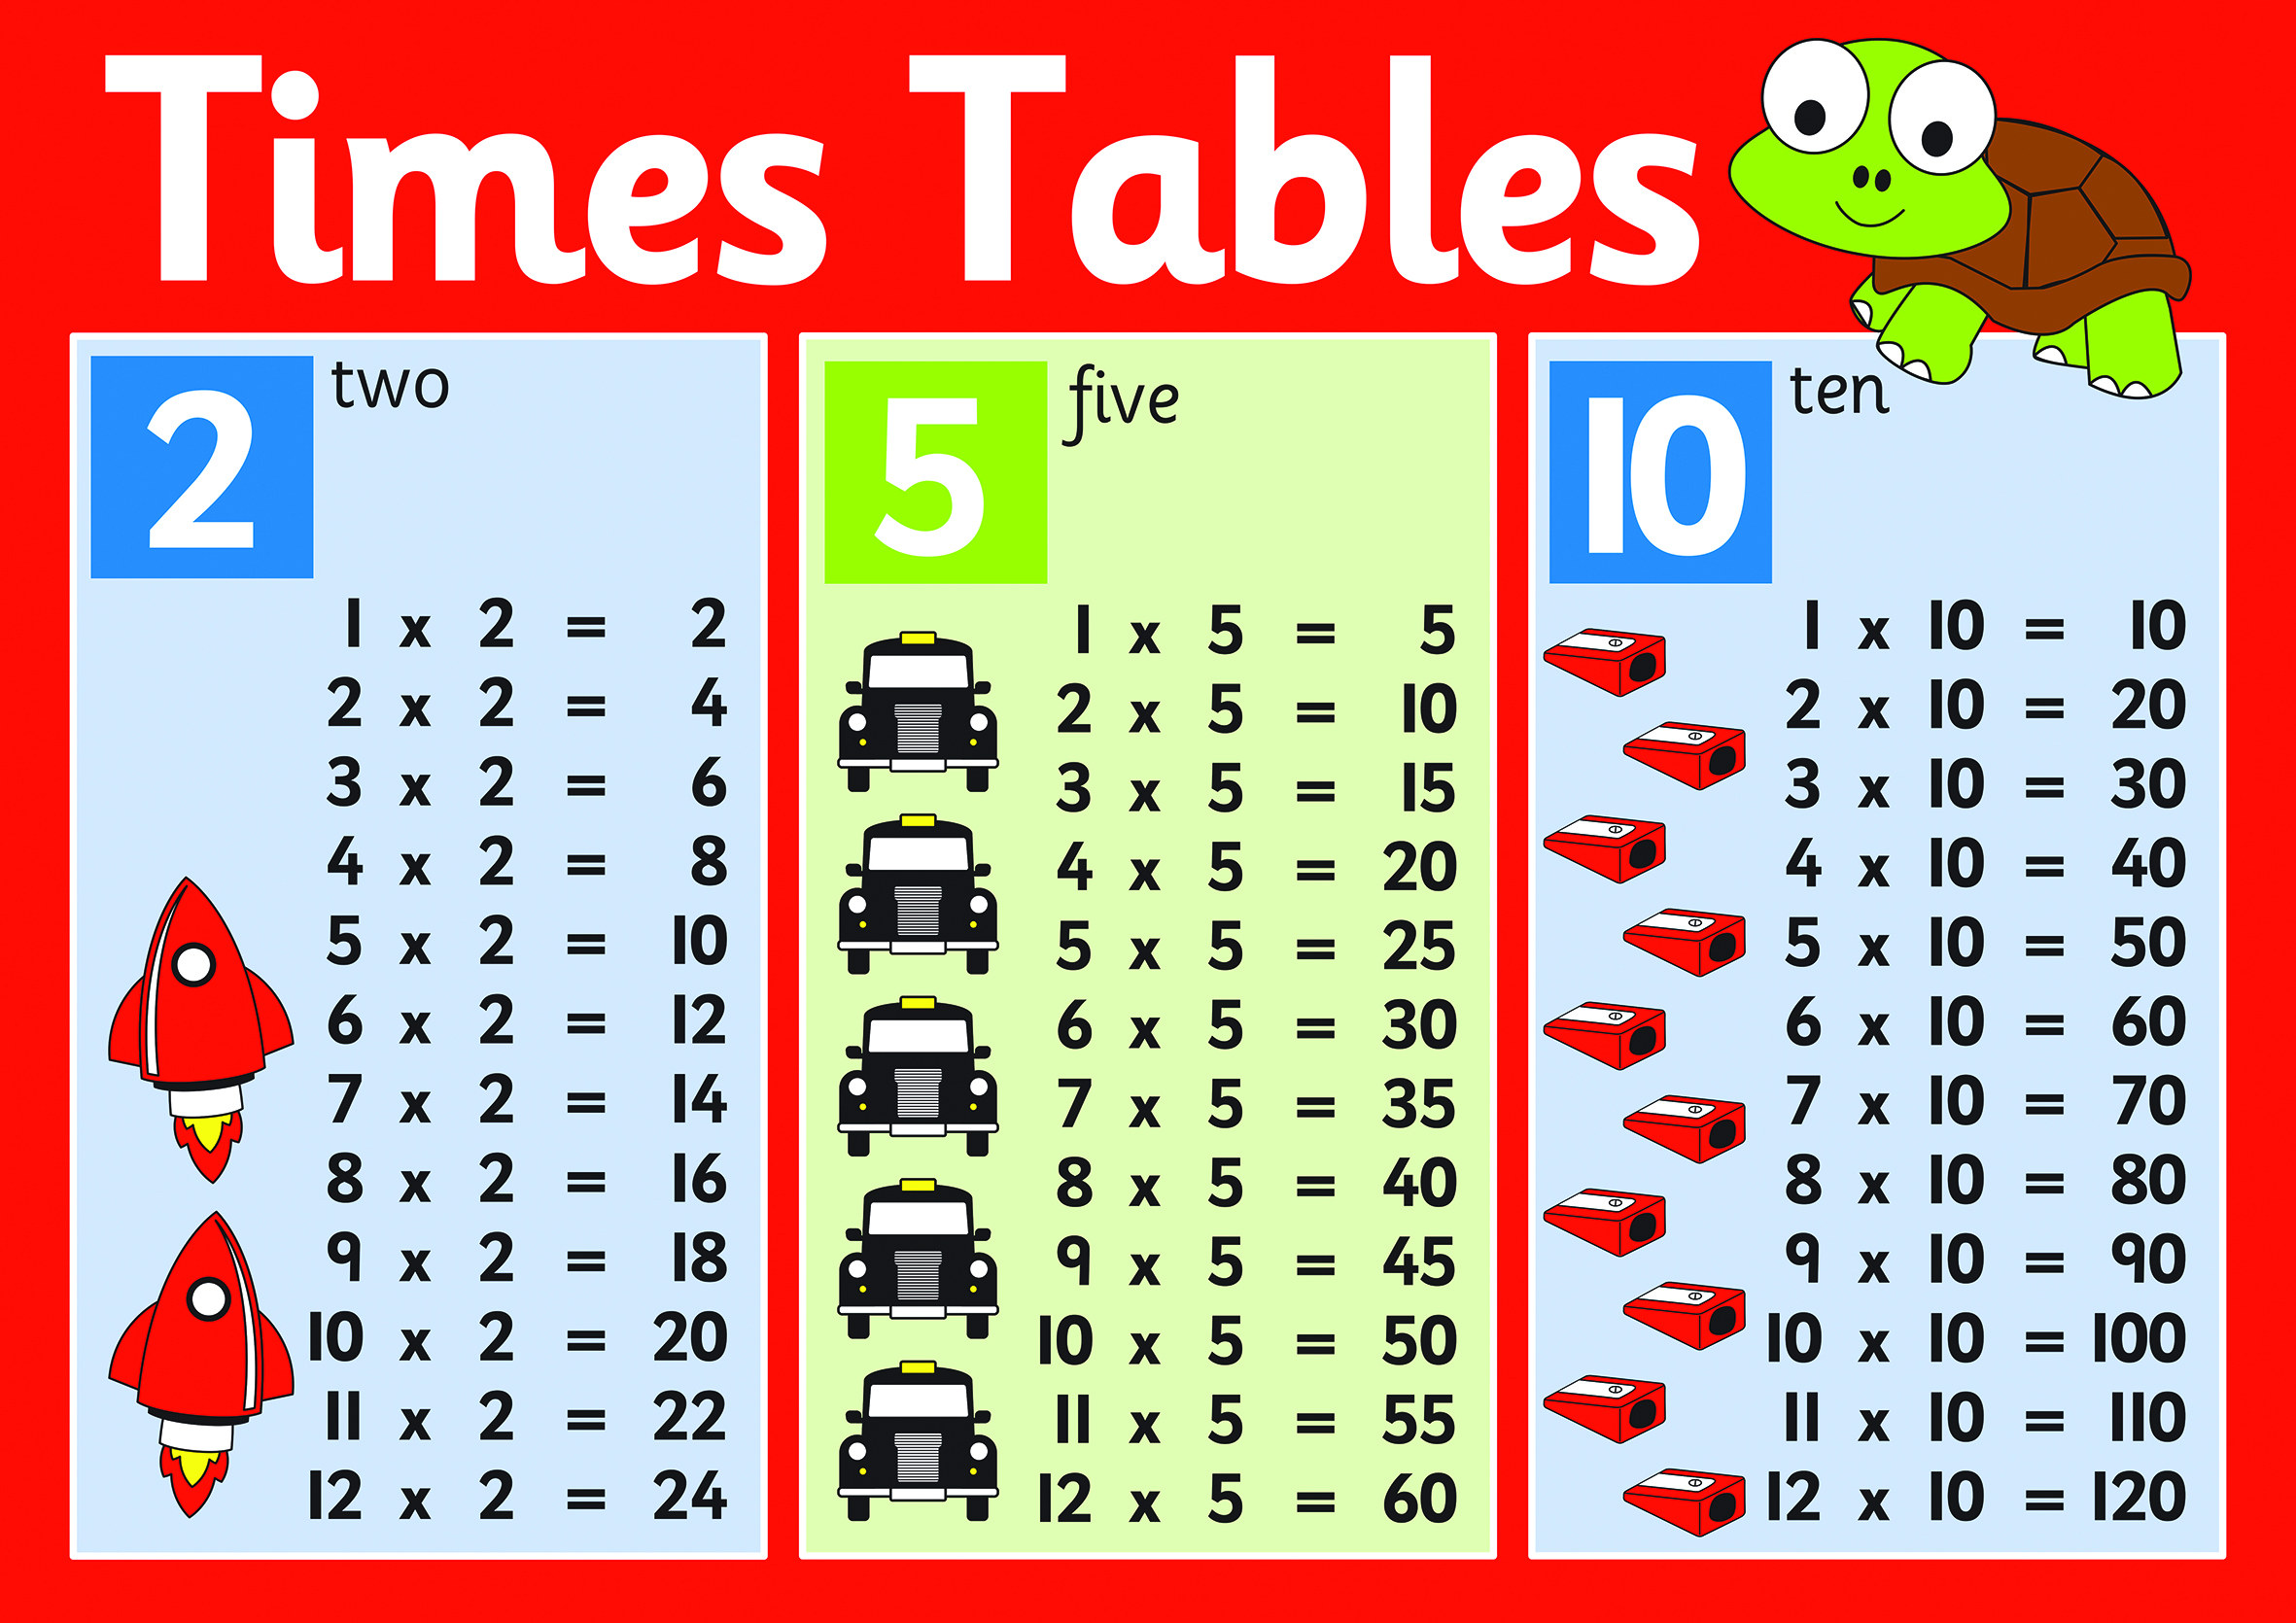 2 5 10 times table poster inspirational group for 10 times table game